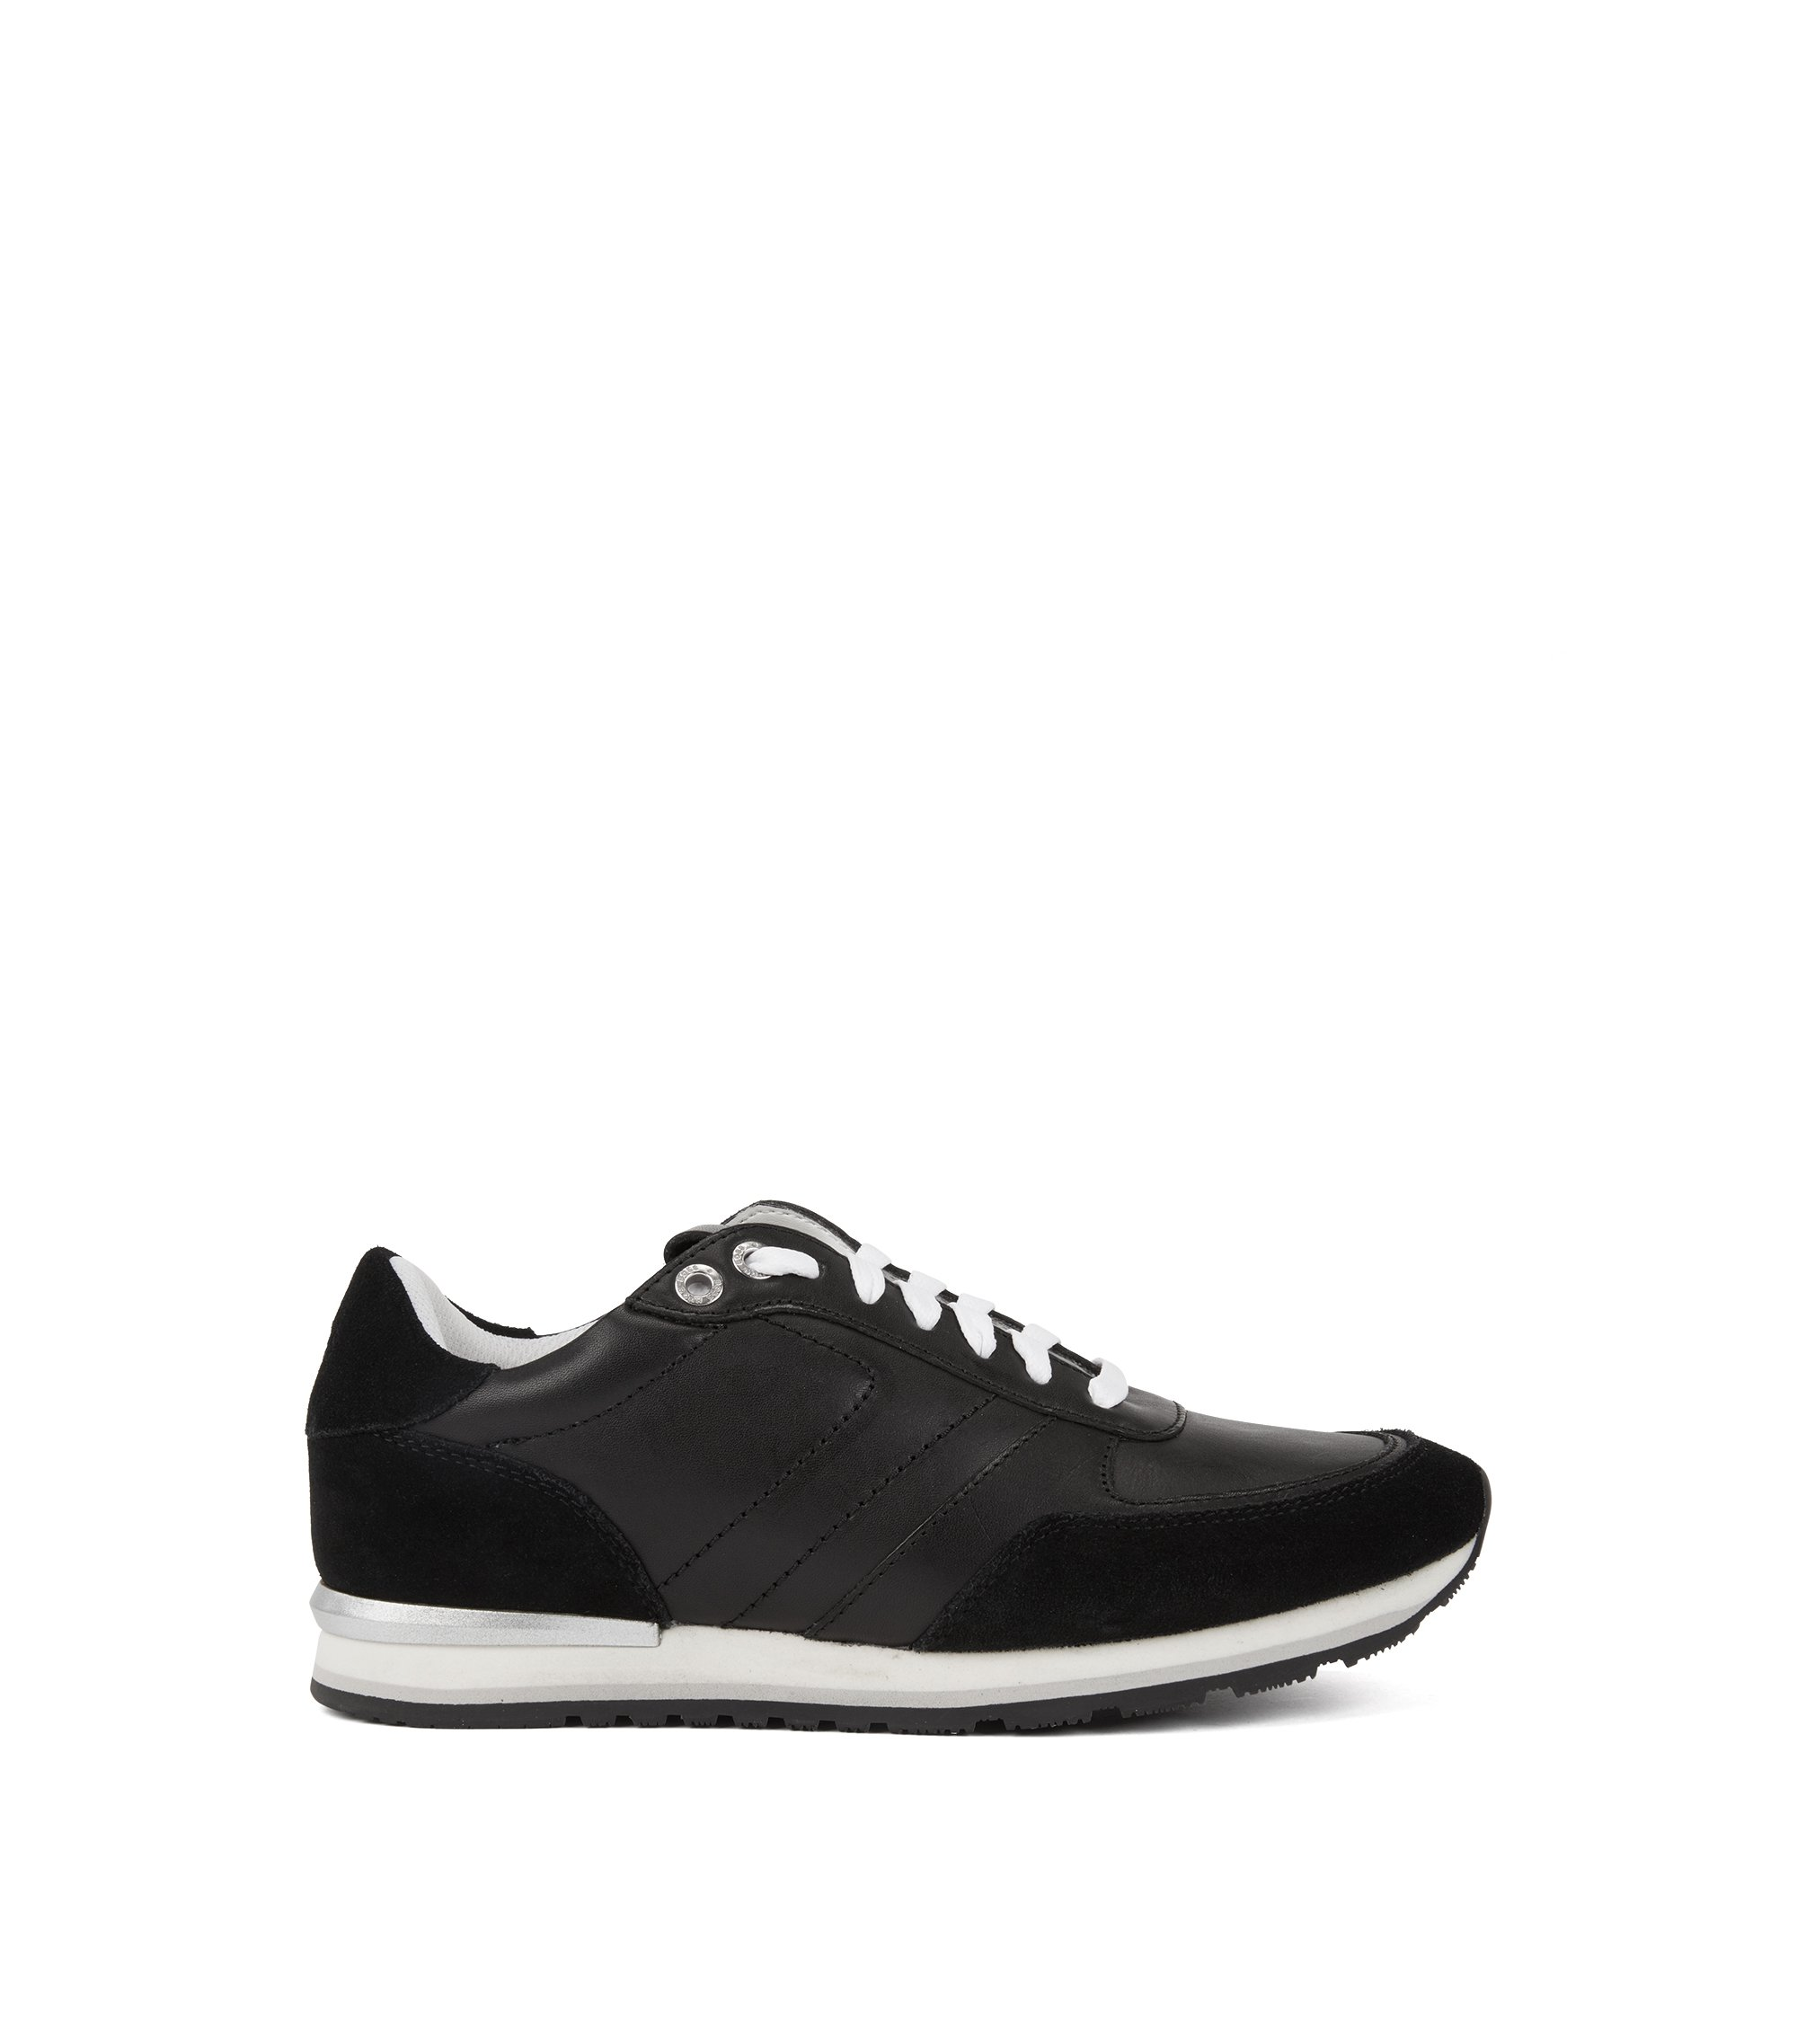 Running-inspired trainers with leather uppers, Black